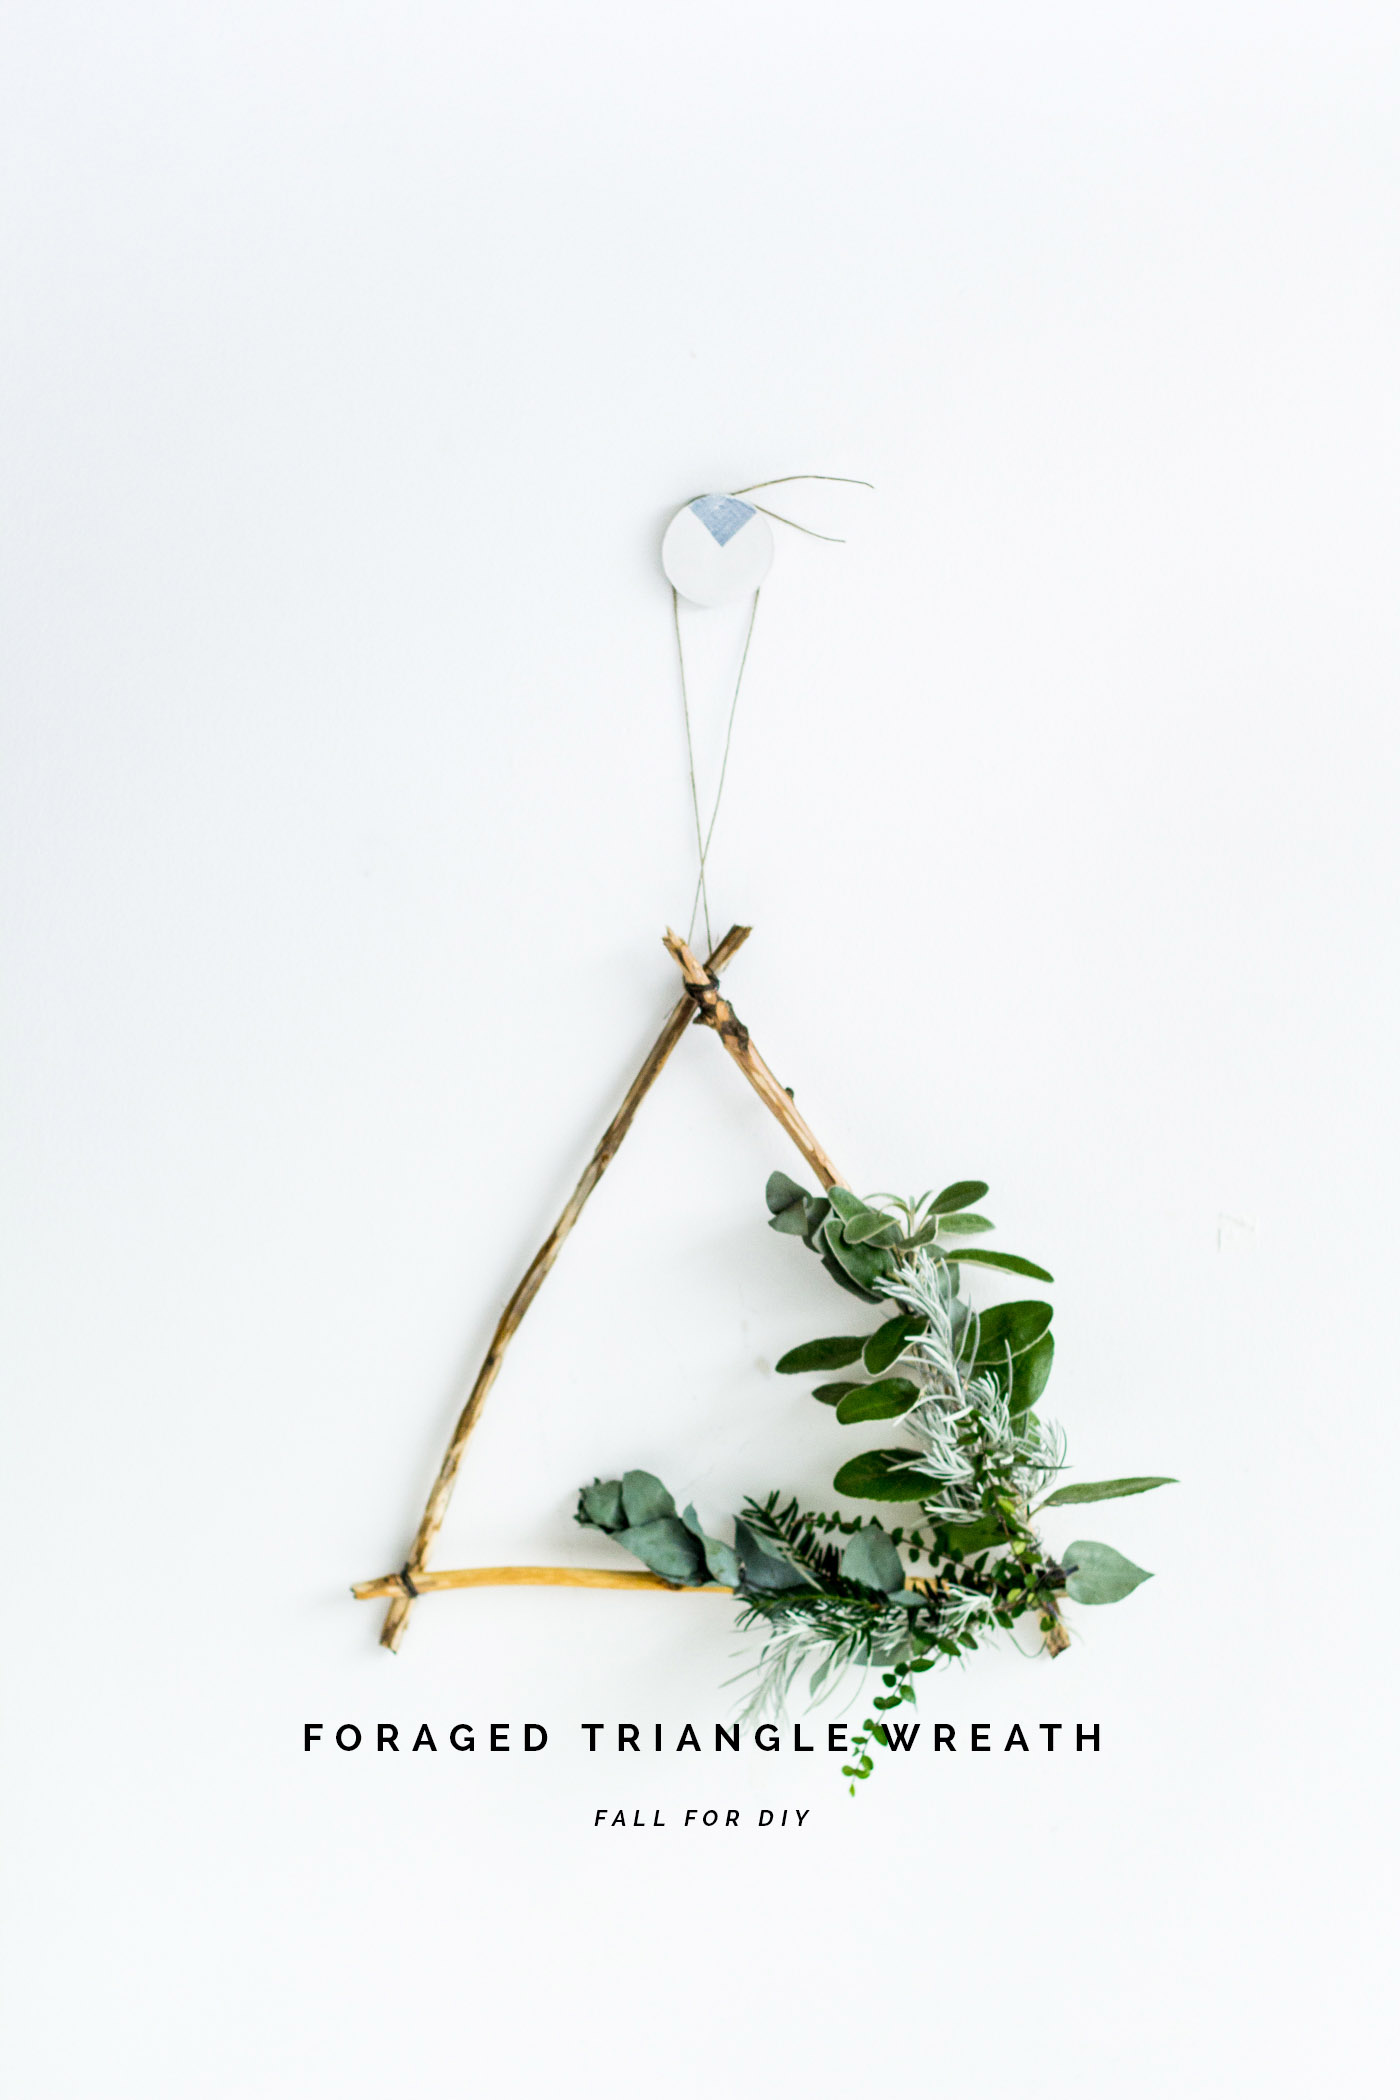 DIY Foraged Triangle Christmas Wreath | @fallfordiy